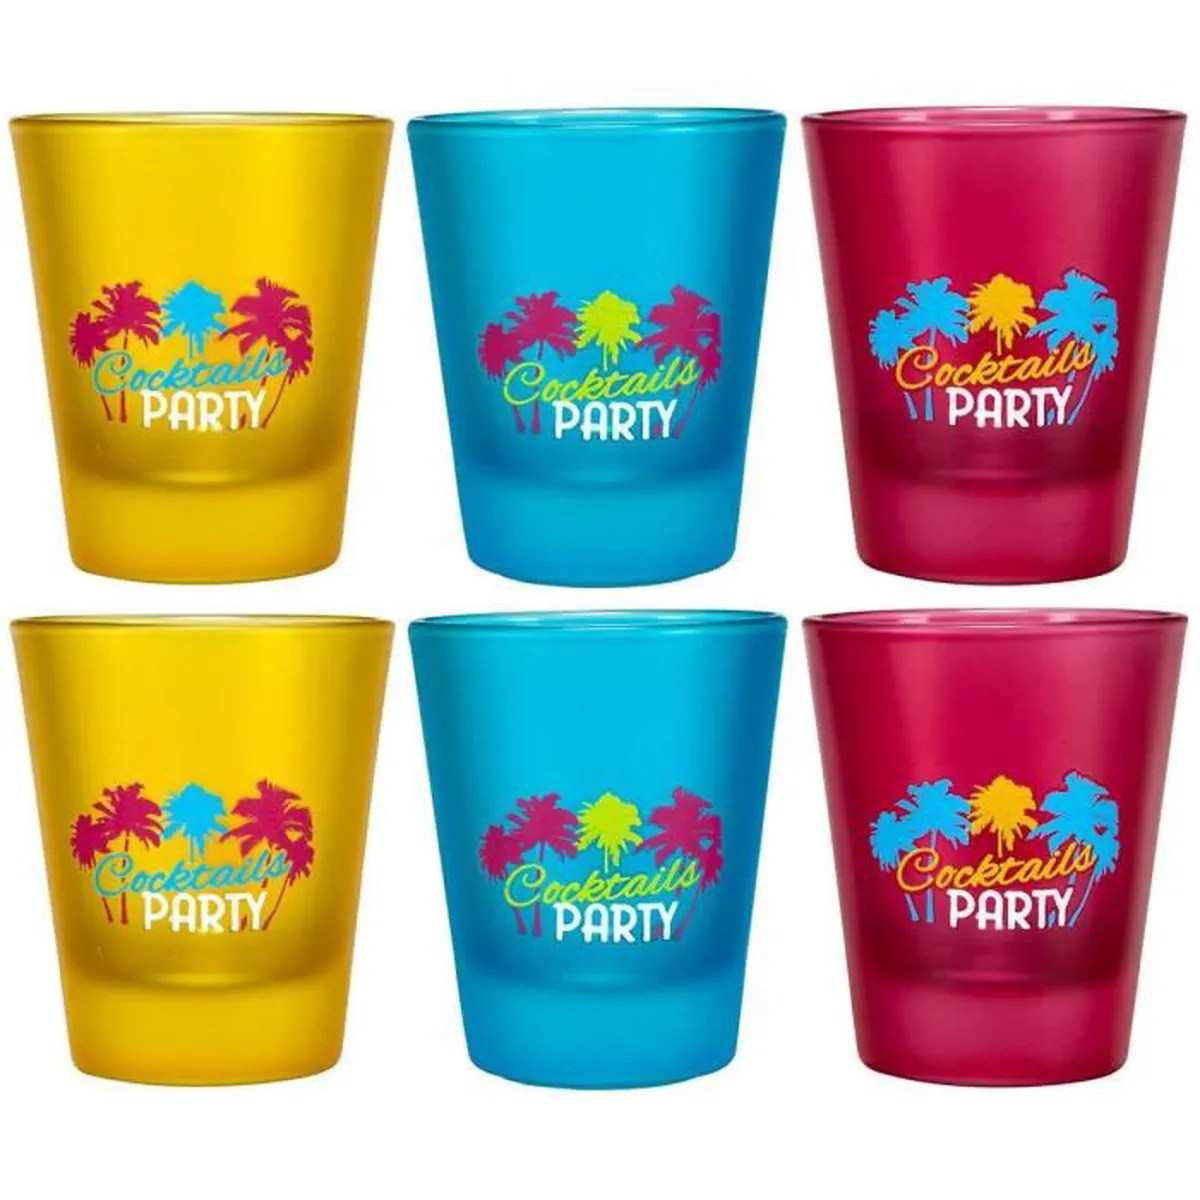 Verre Whisky Tete De Mort Set Lot 6 Verres A Shot Shooters Cocktail Fluo Glow In The